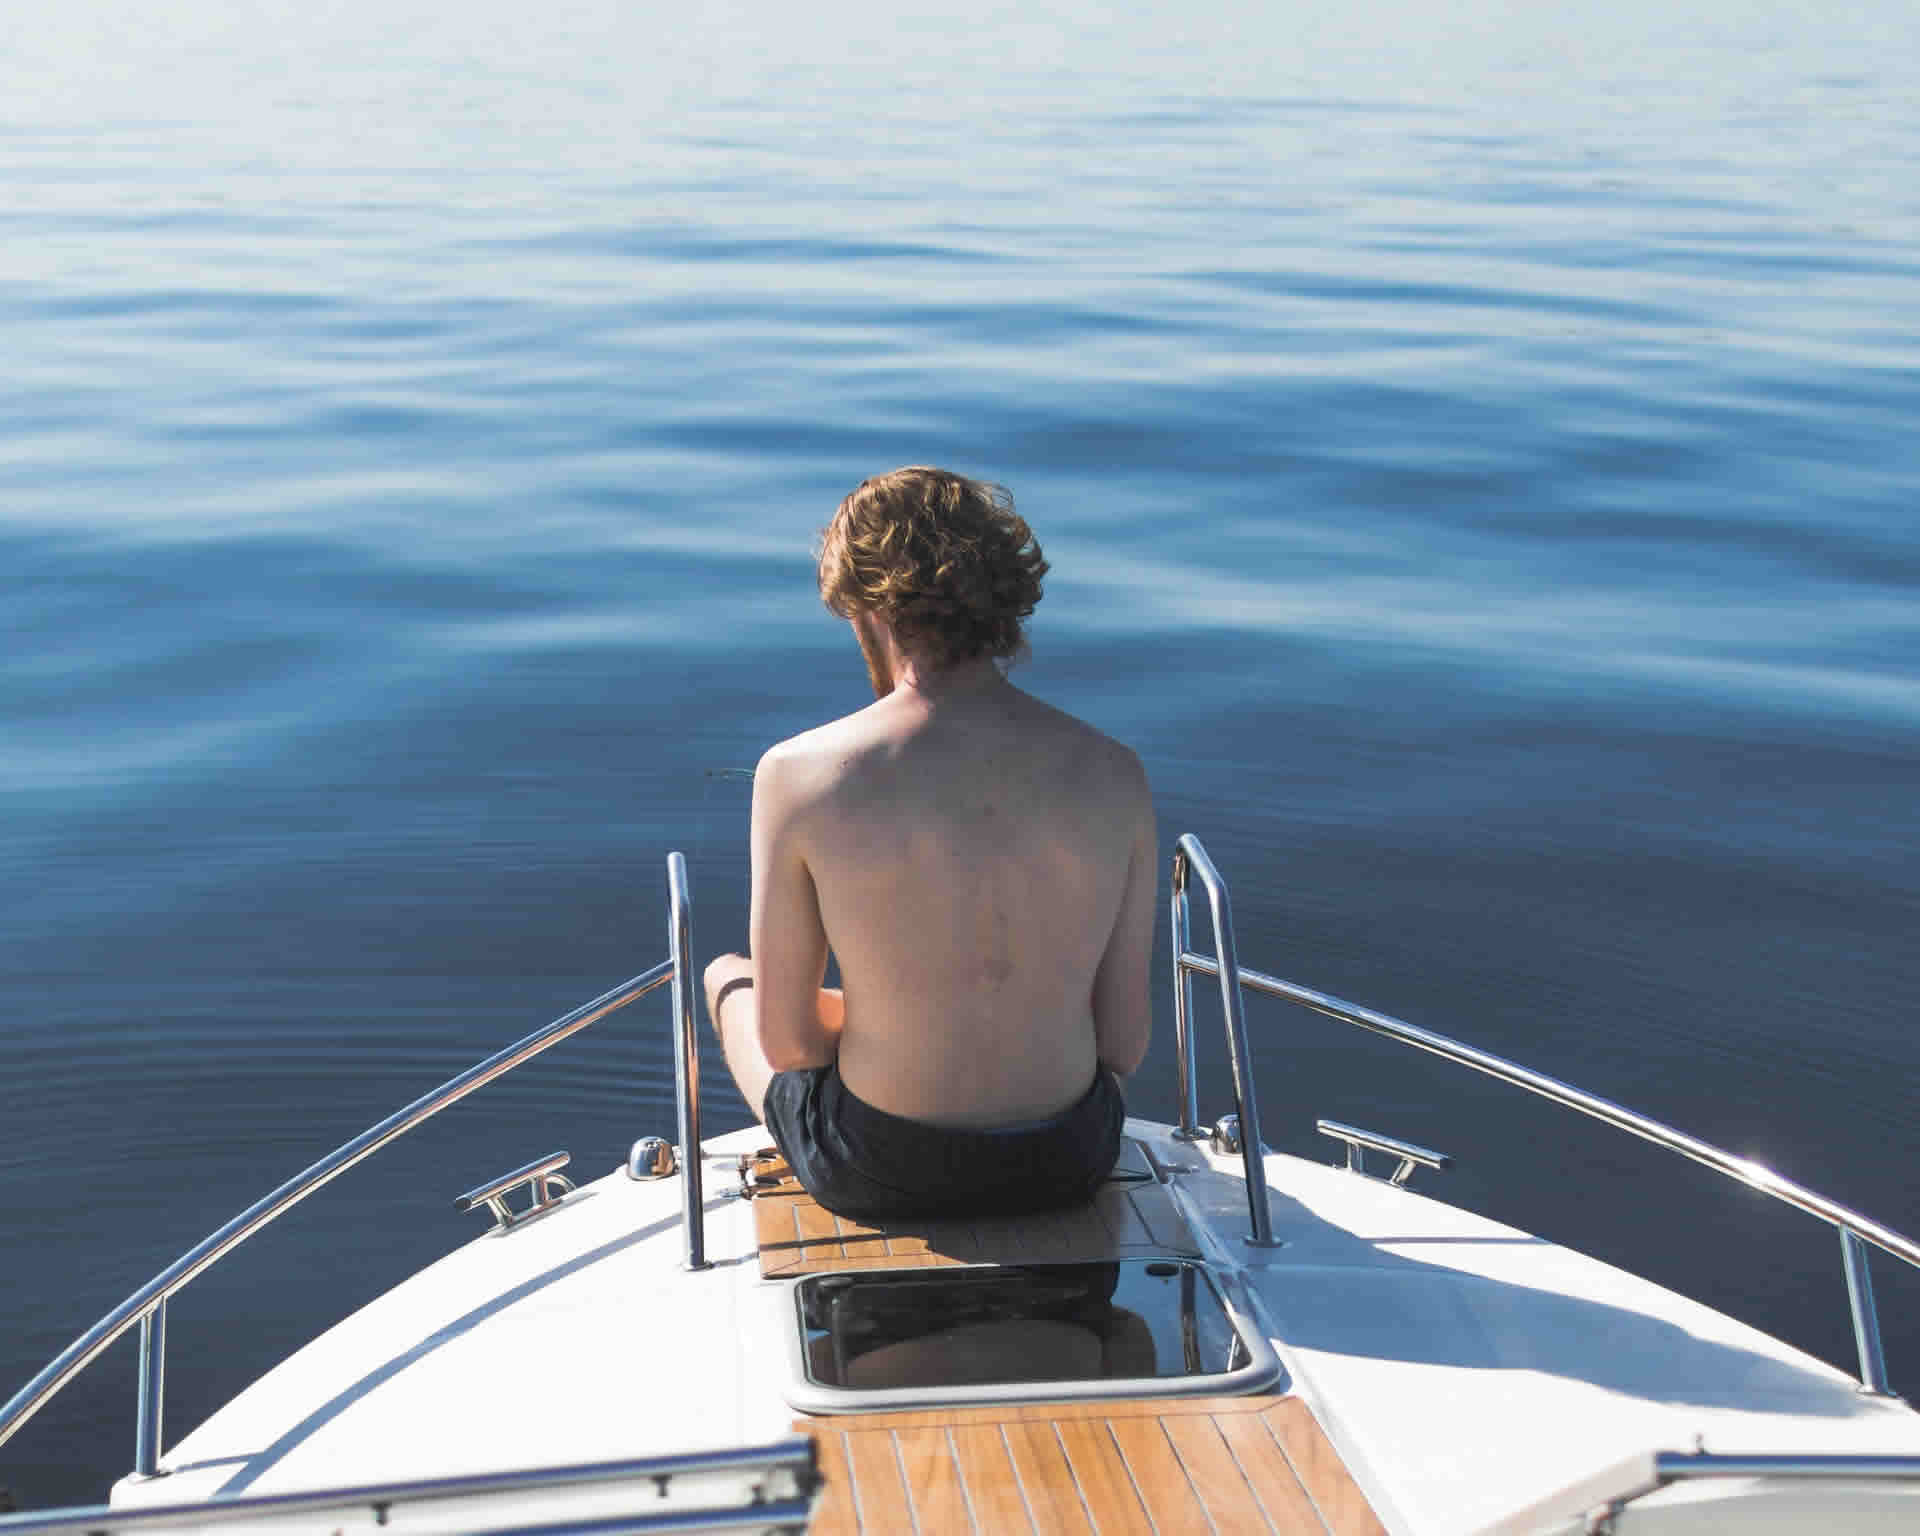 Boating For Beginners: 5 Tips To Make Your Experience Safe And Enjoyable